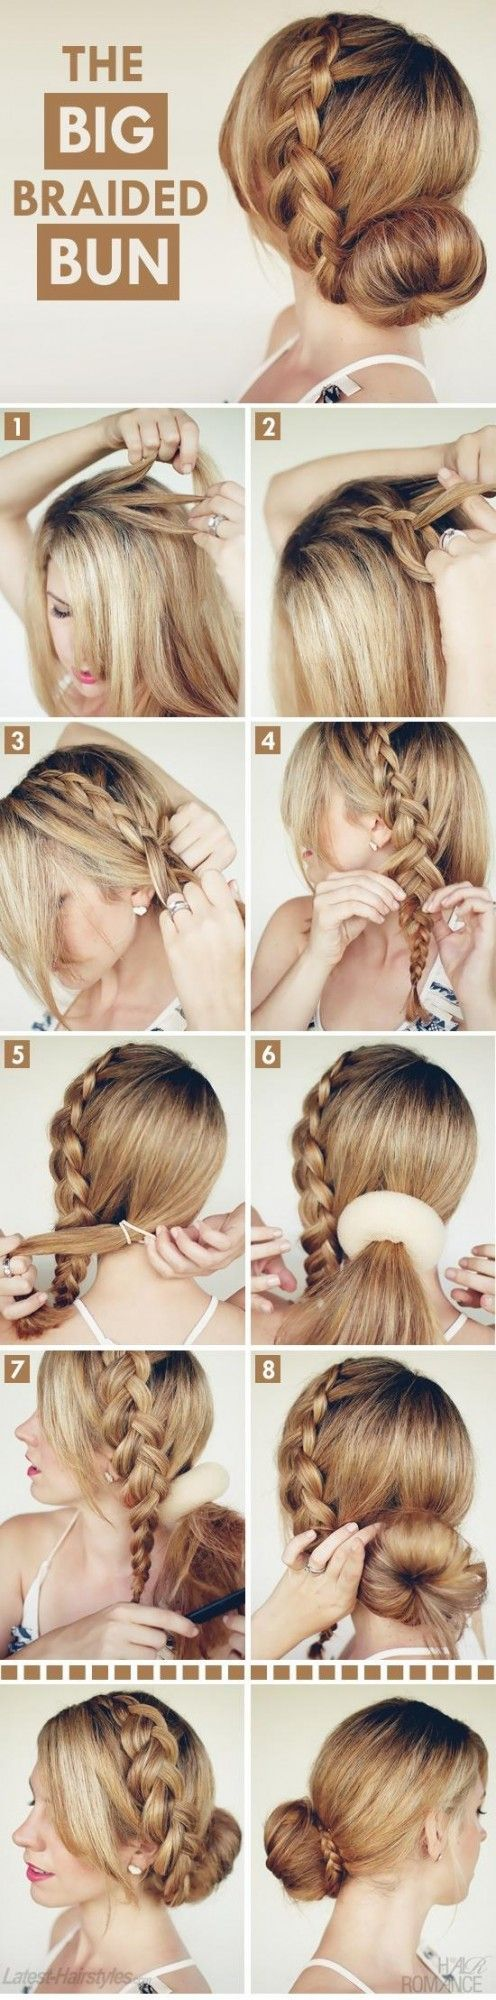 Awe Inspiring 1000 Ideas About Easy Homecoming Hairstyles On Pinterest Short Hairstyles For Black Women Fulllsitofus